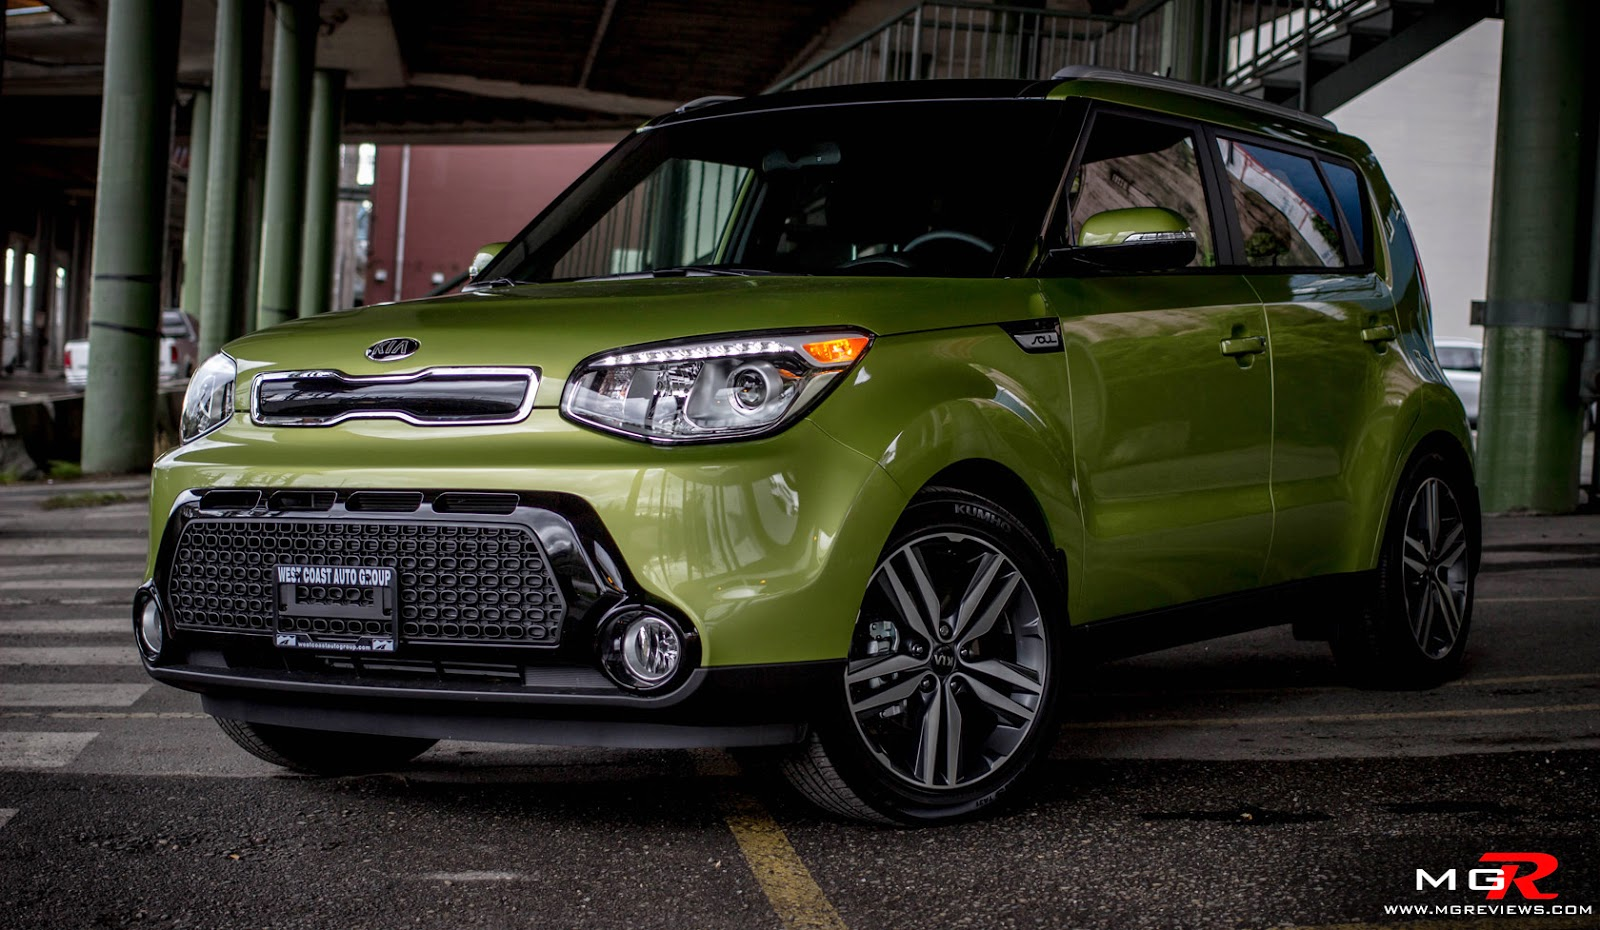 2015 kia soul exclaim alien green reviewhigh definition pics 2015 kia soul exclaim alien green reviewhigh definition pics tha kia soul sciox Choice Image